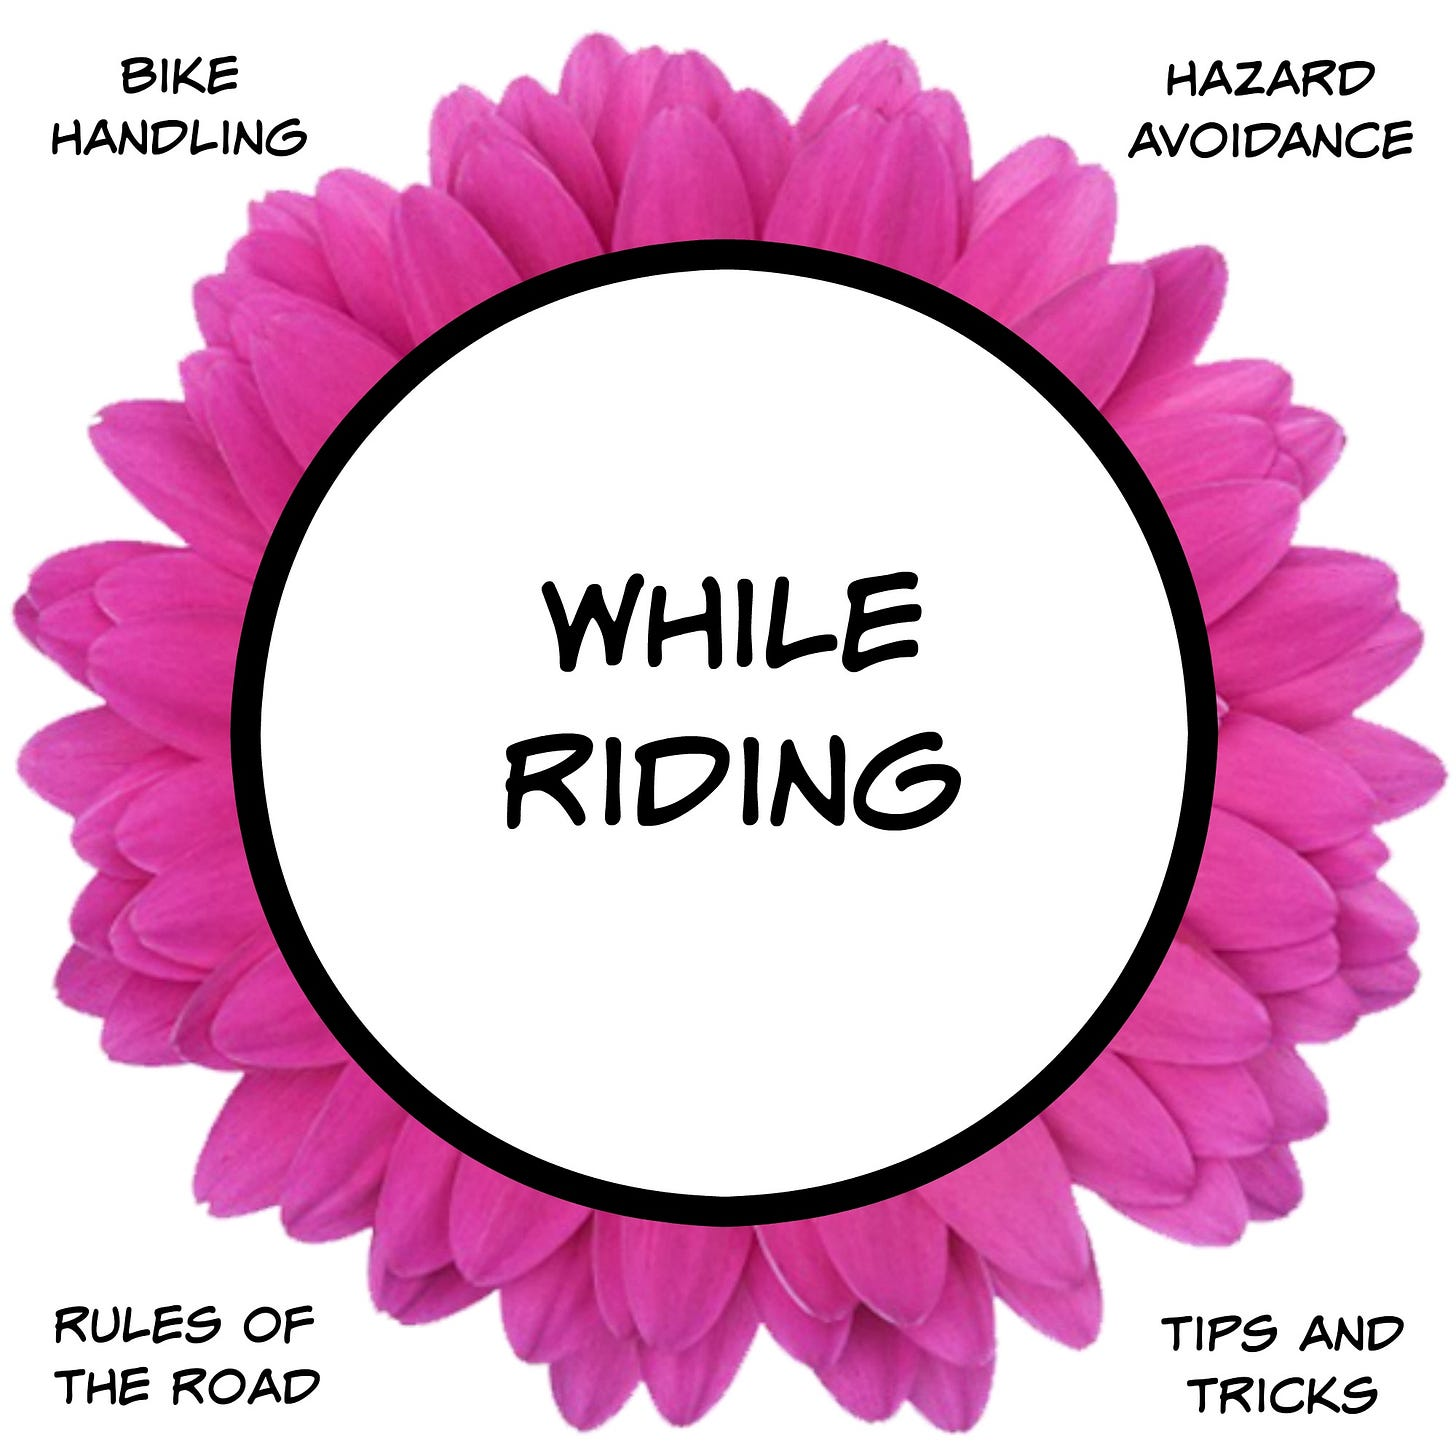 While Riding considerations